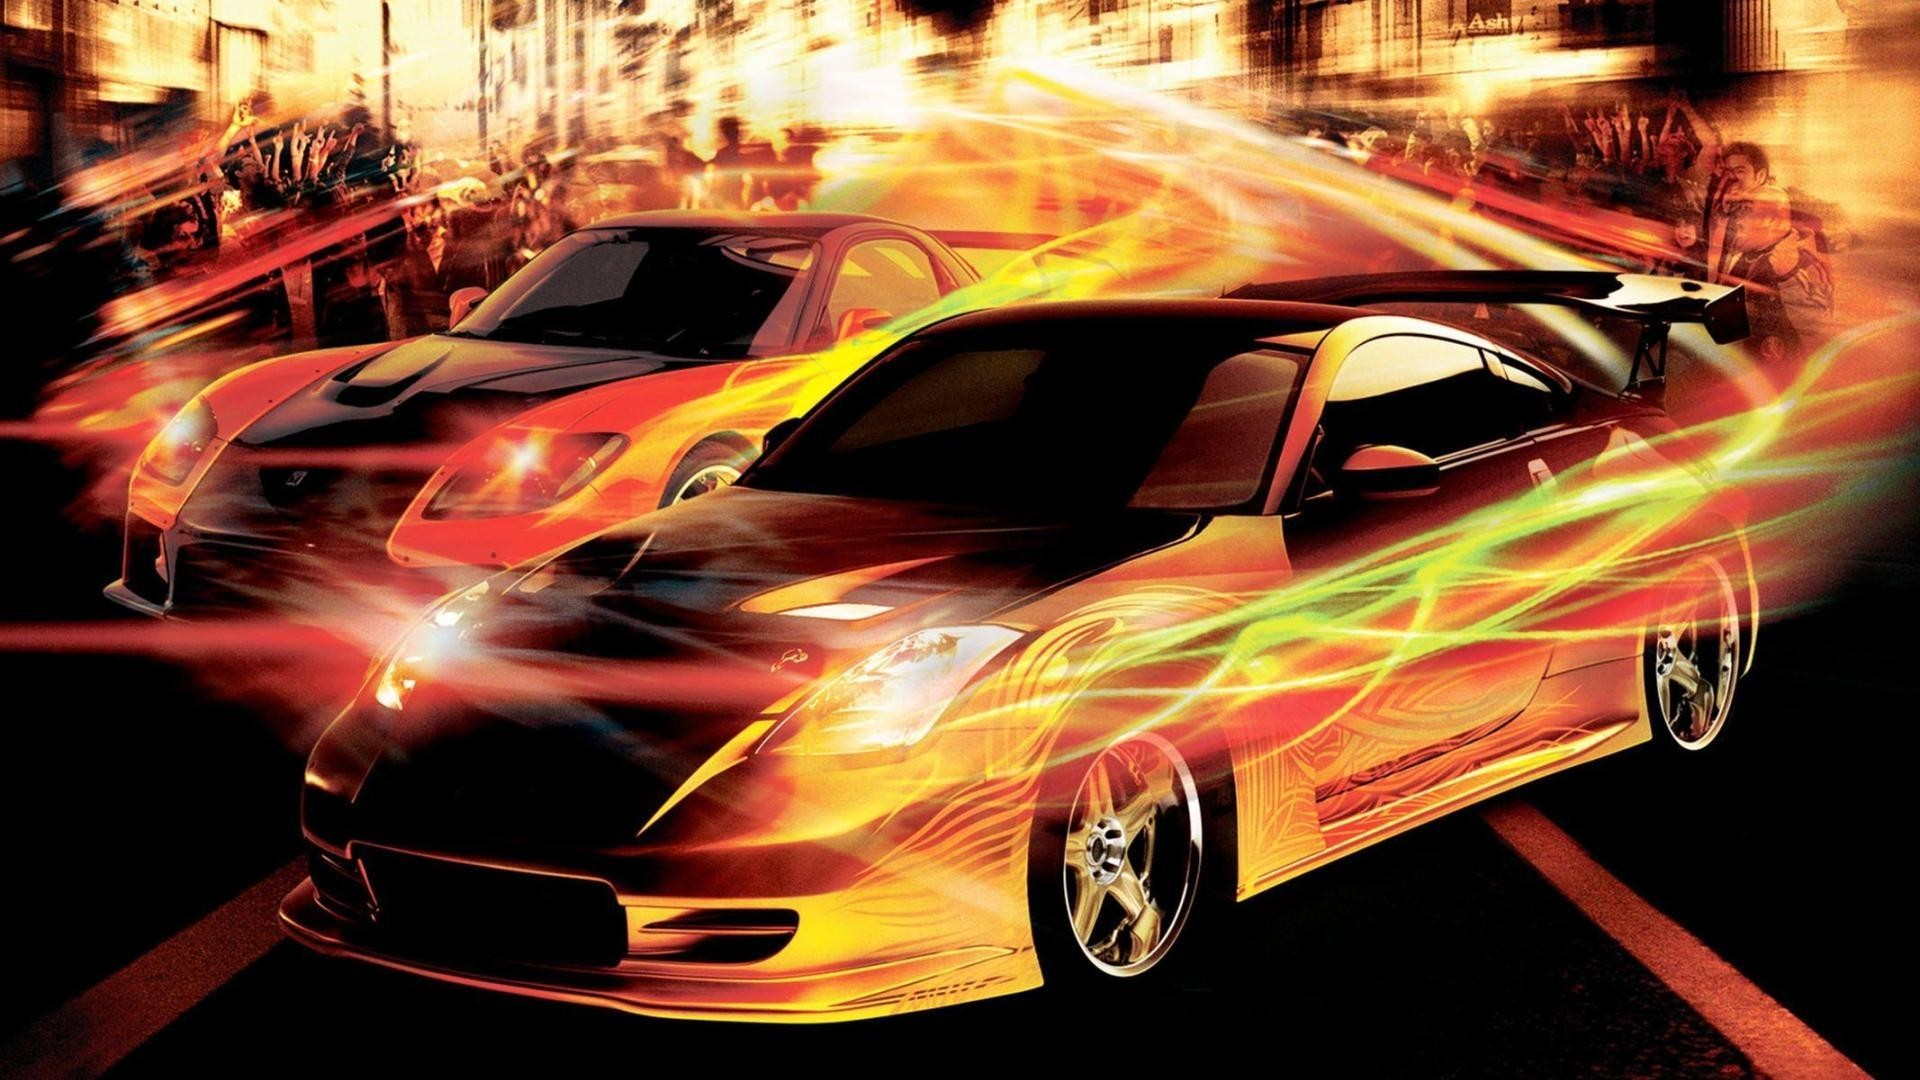 Fast and Furious wallpapers Movie News and Trailers 1920x1080